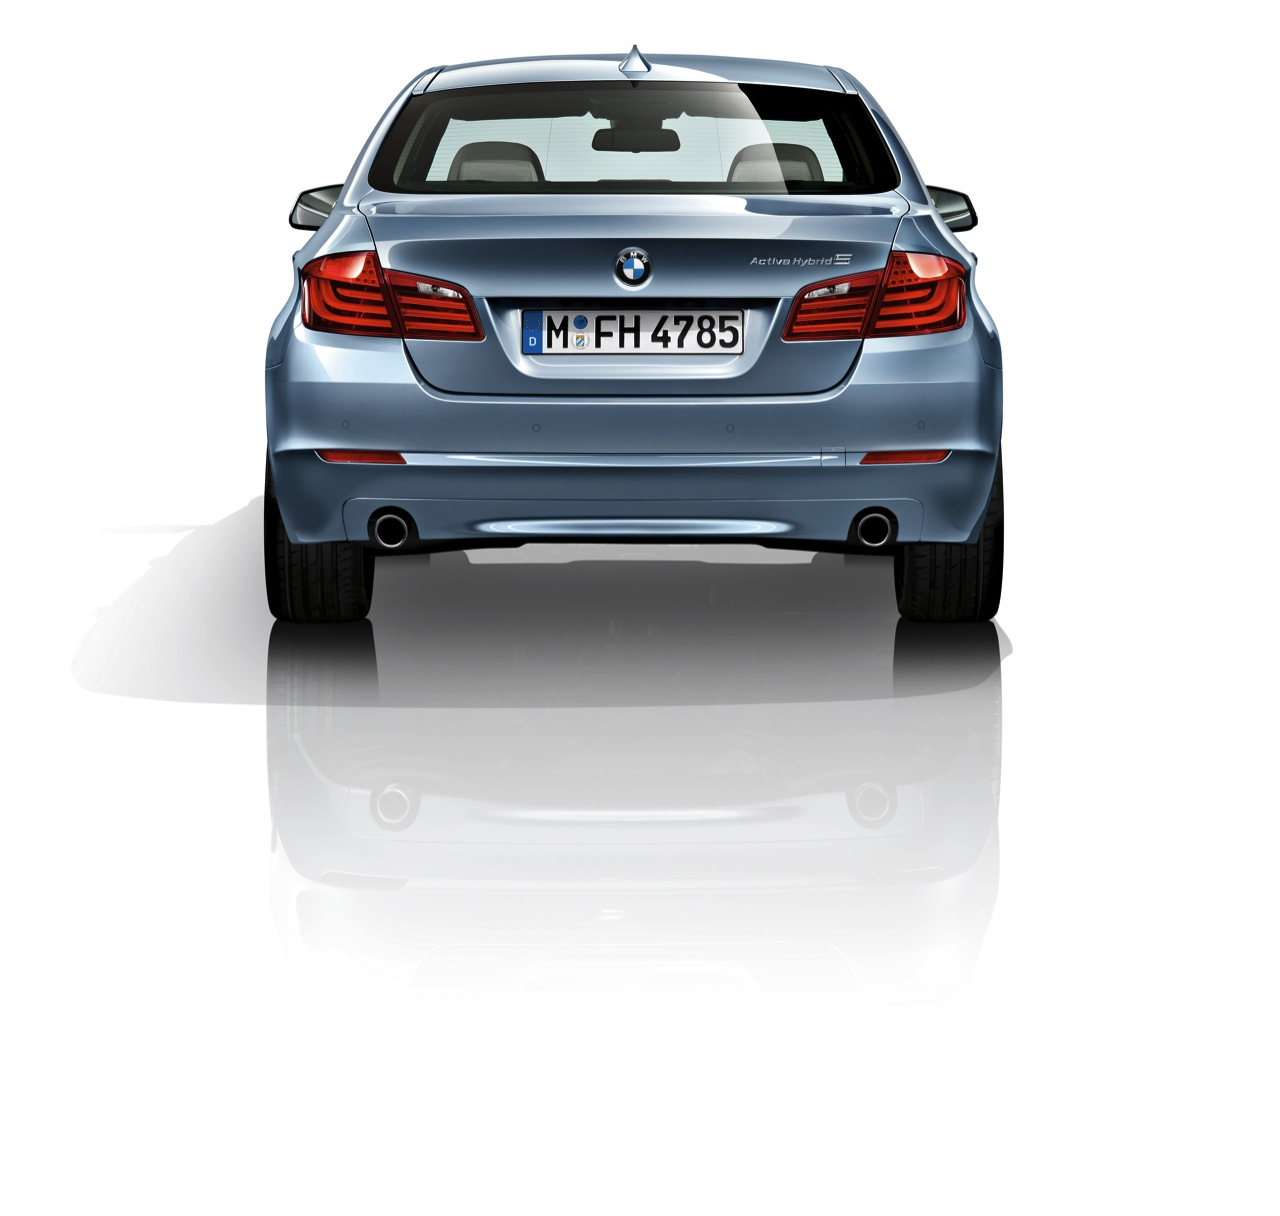 A123 Will Supply Battery Packs For BMW Hybrids